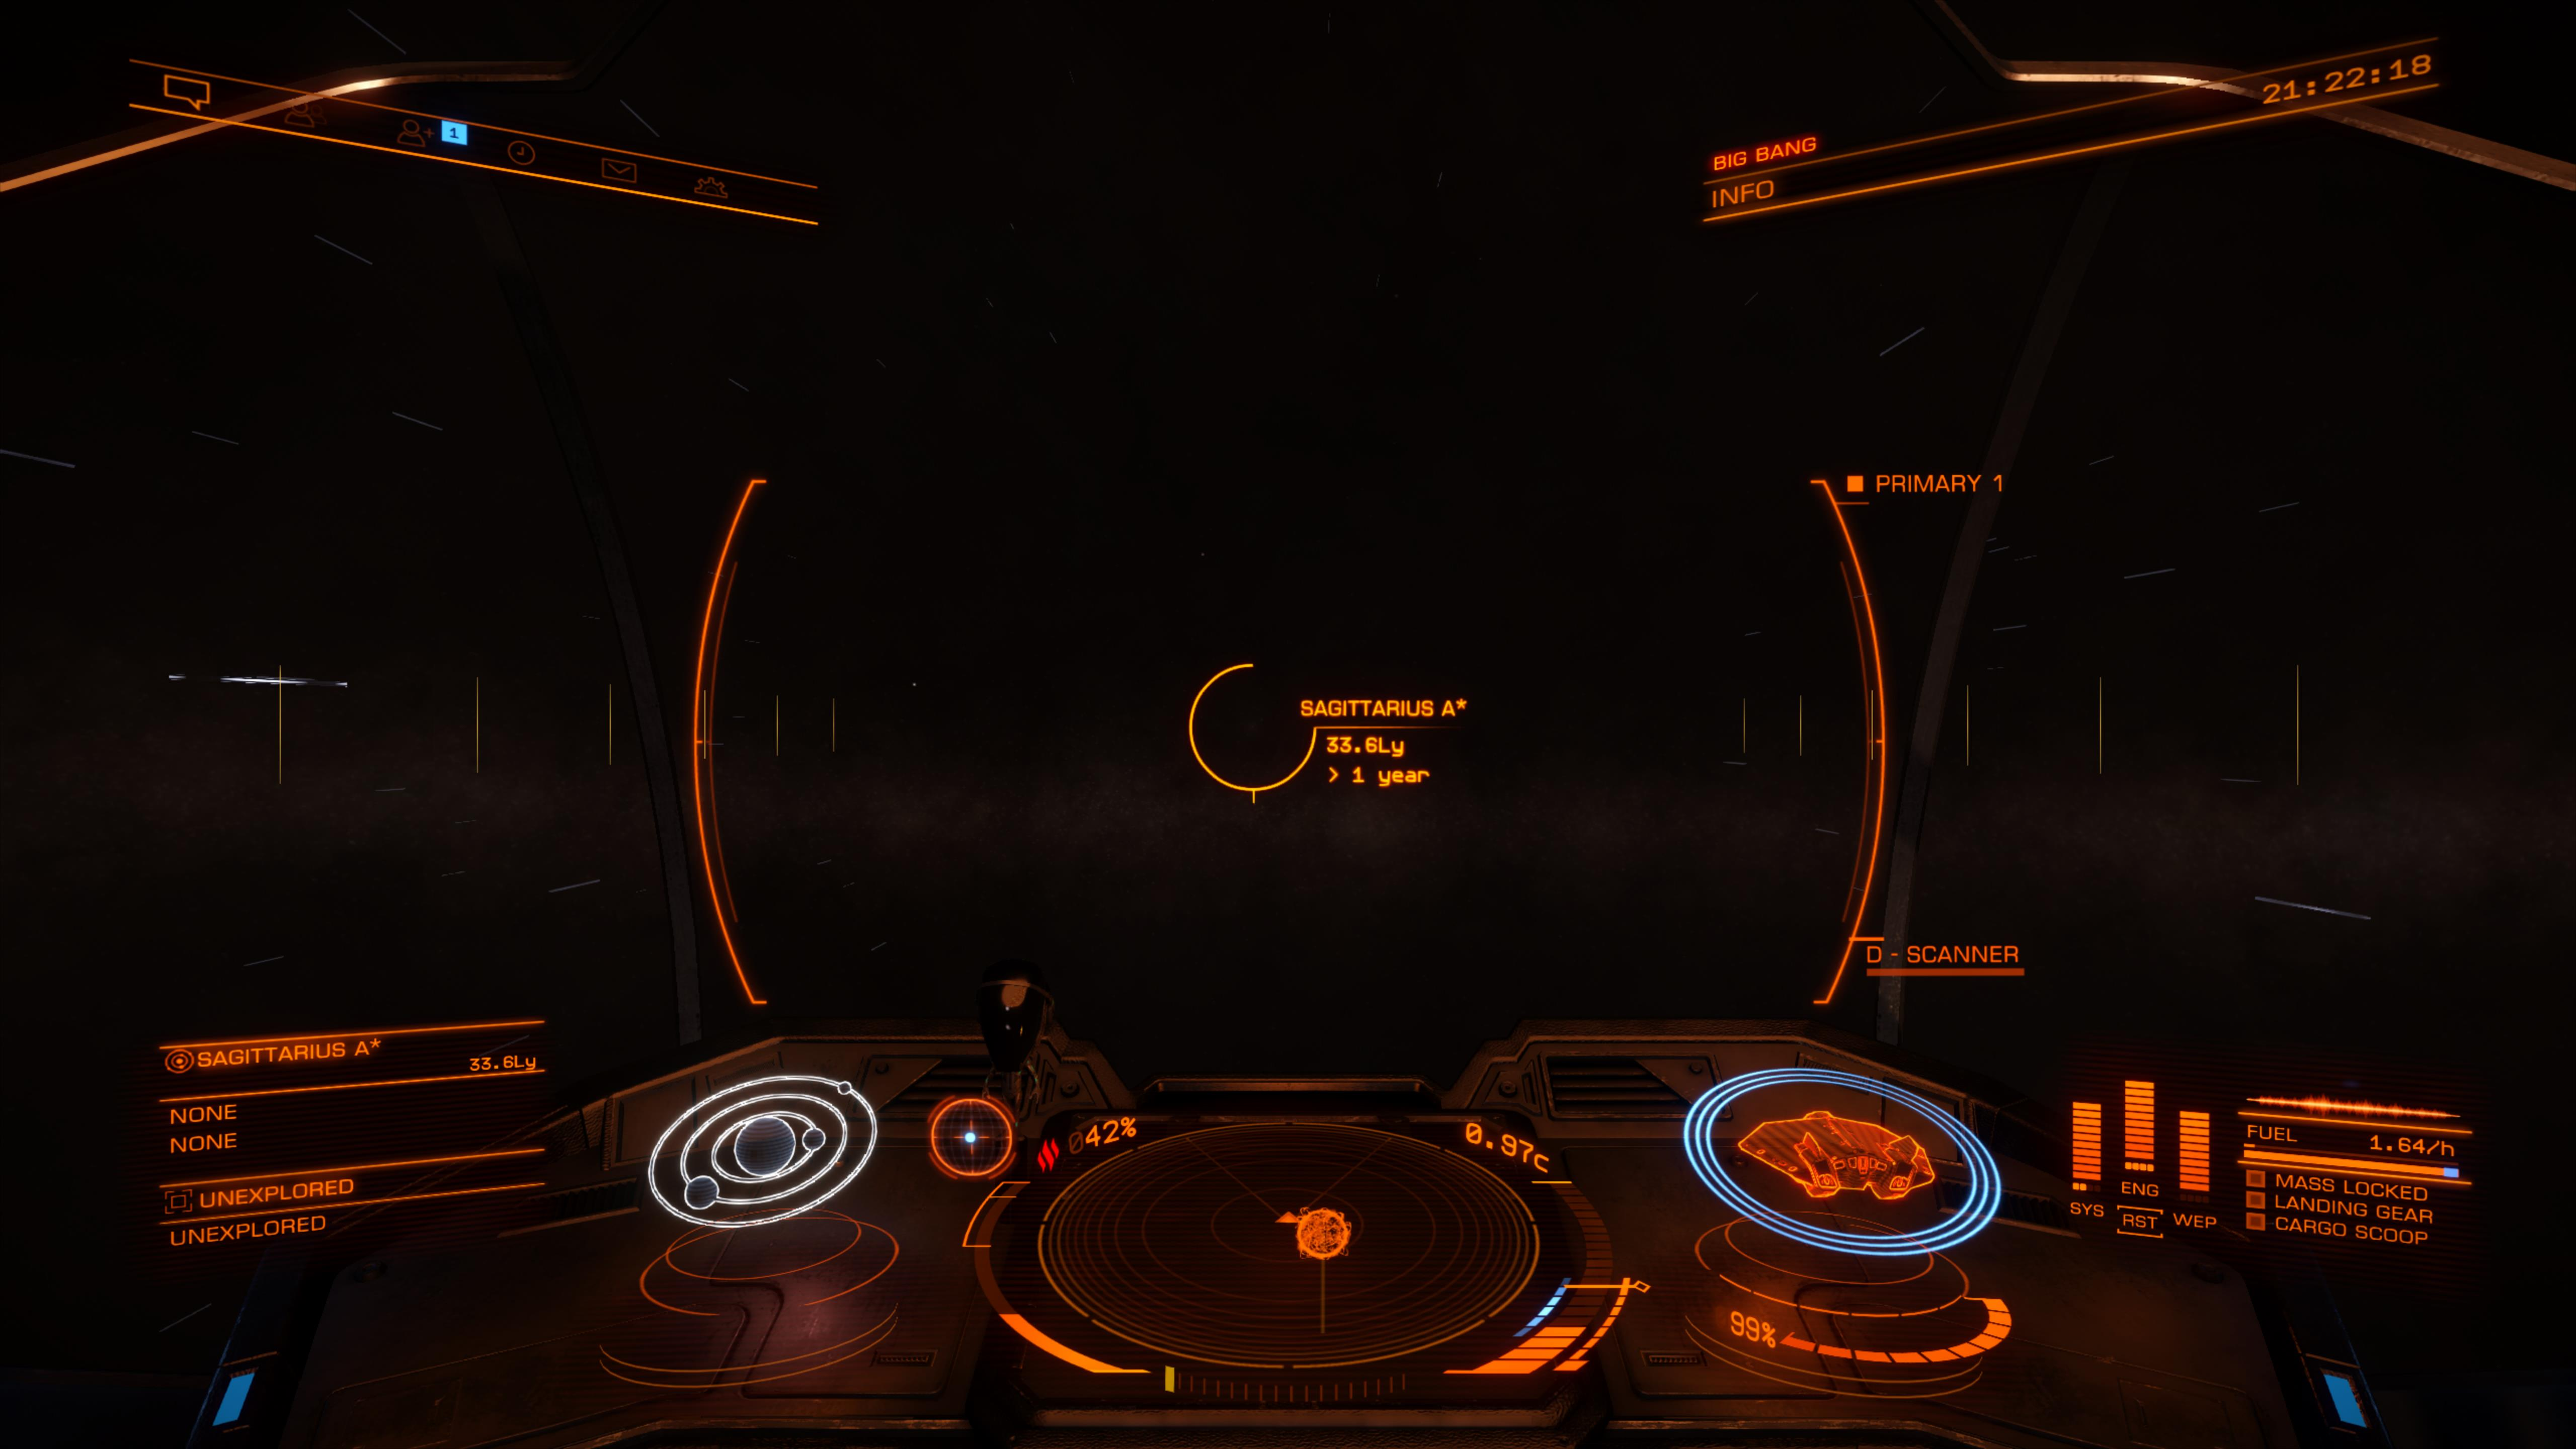 Sag A* in sight